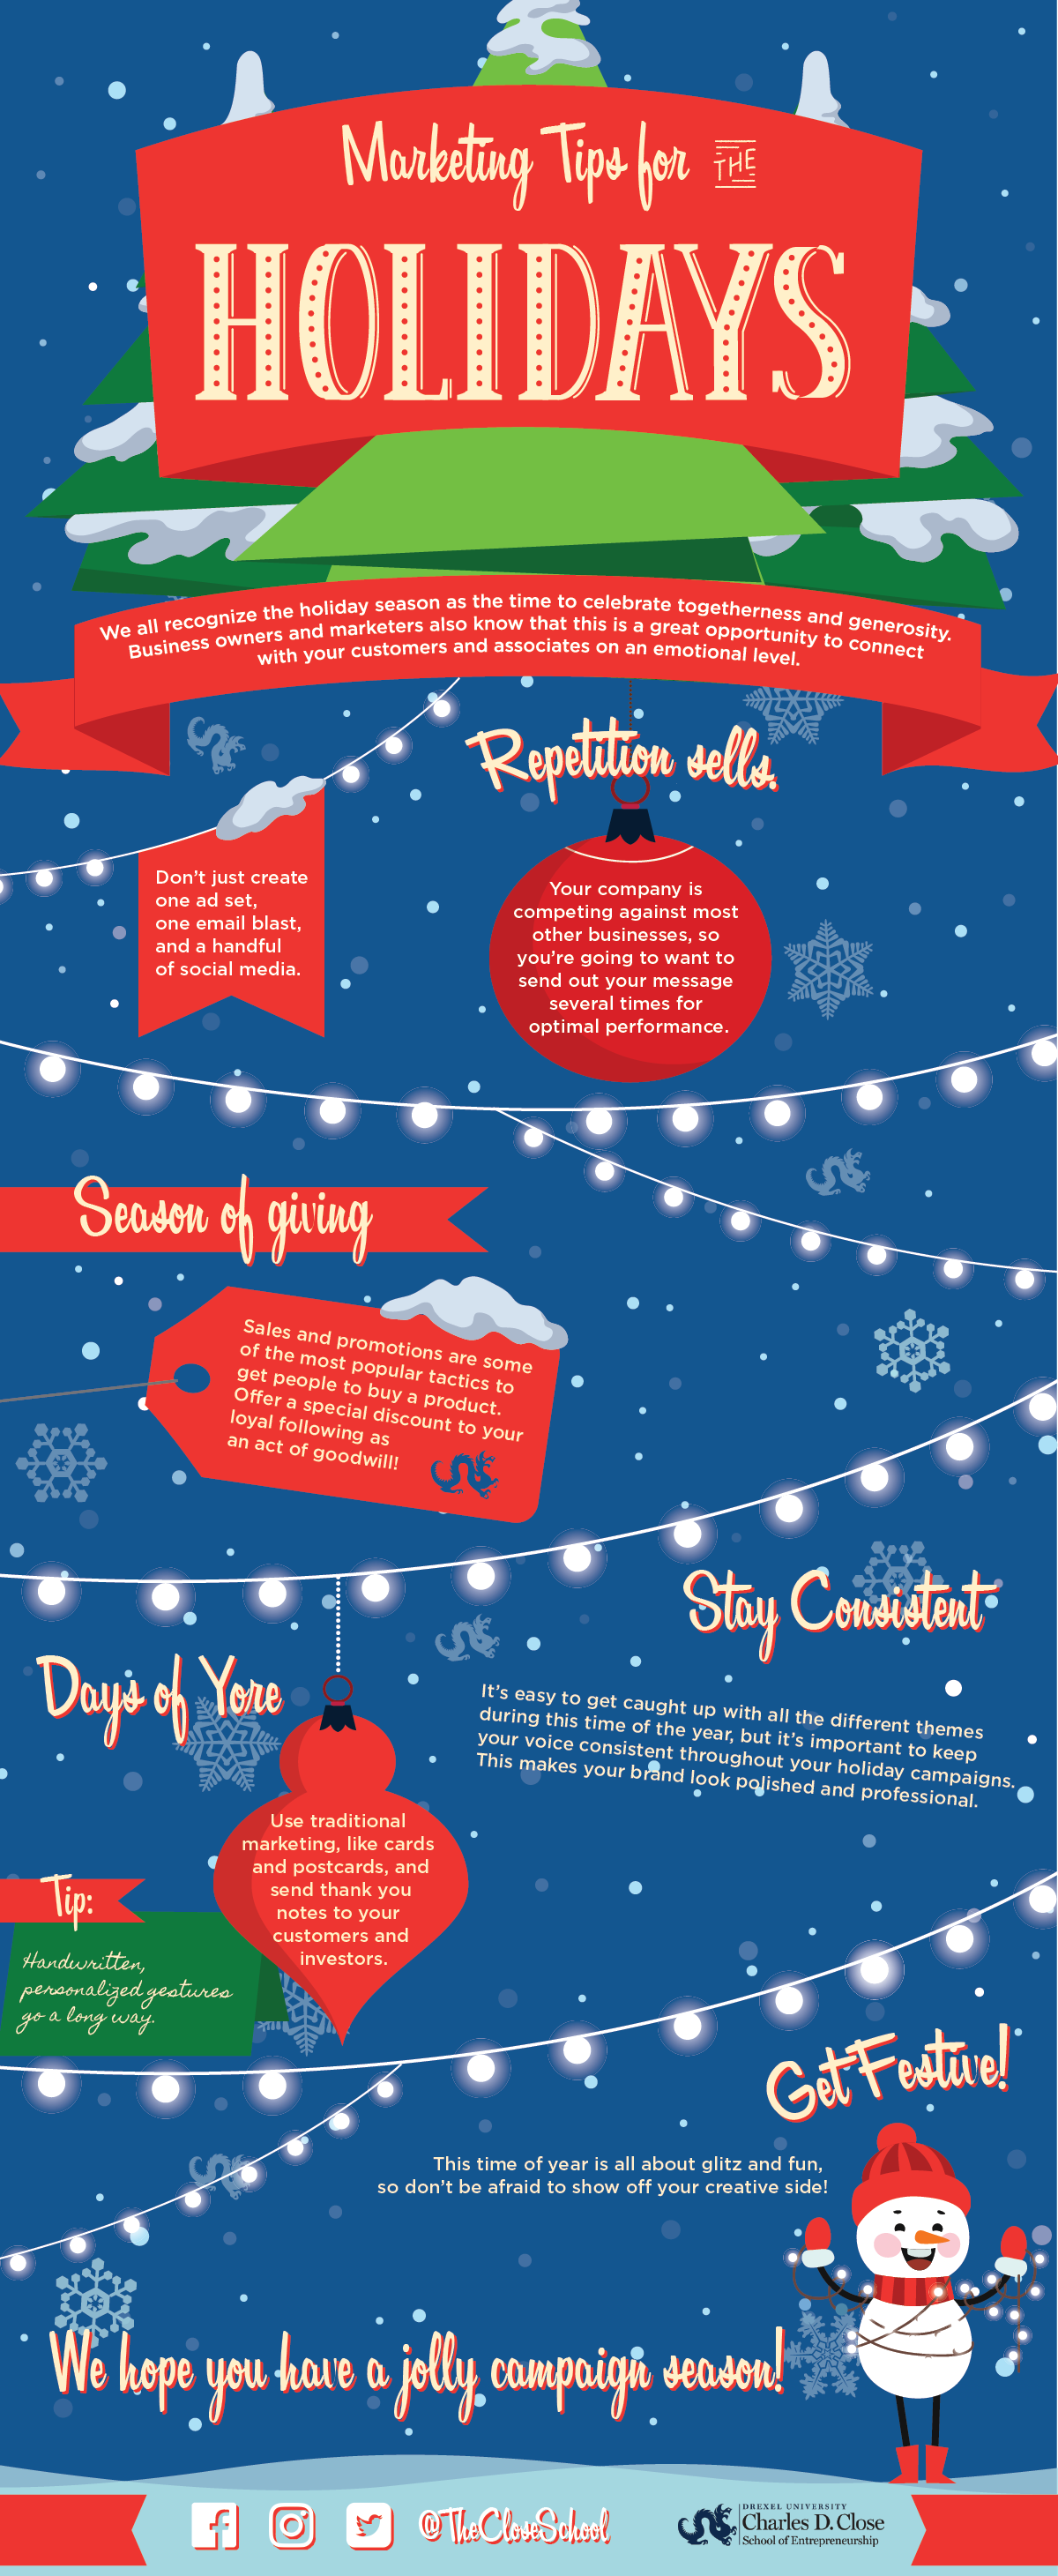 Marketing Tips for the Holidays